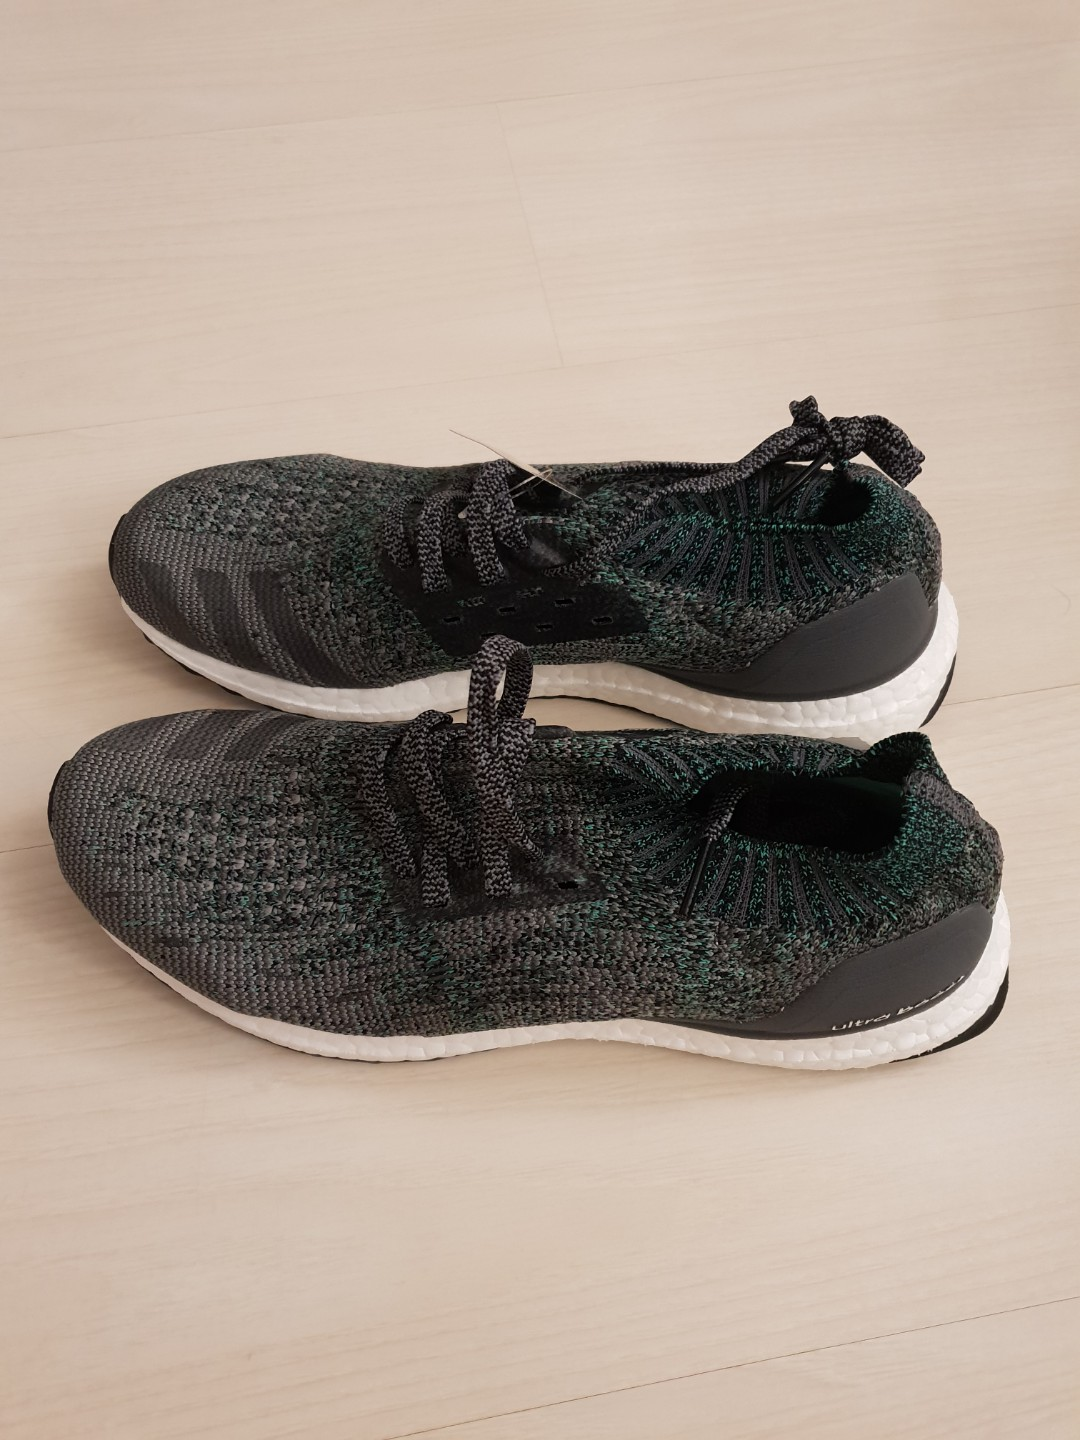 6a9e00ba92d6e New Adidas Ultra Boost Uncaged  Color DA9165